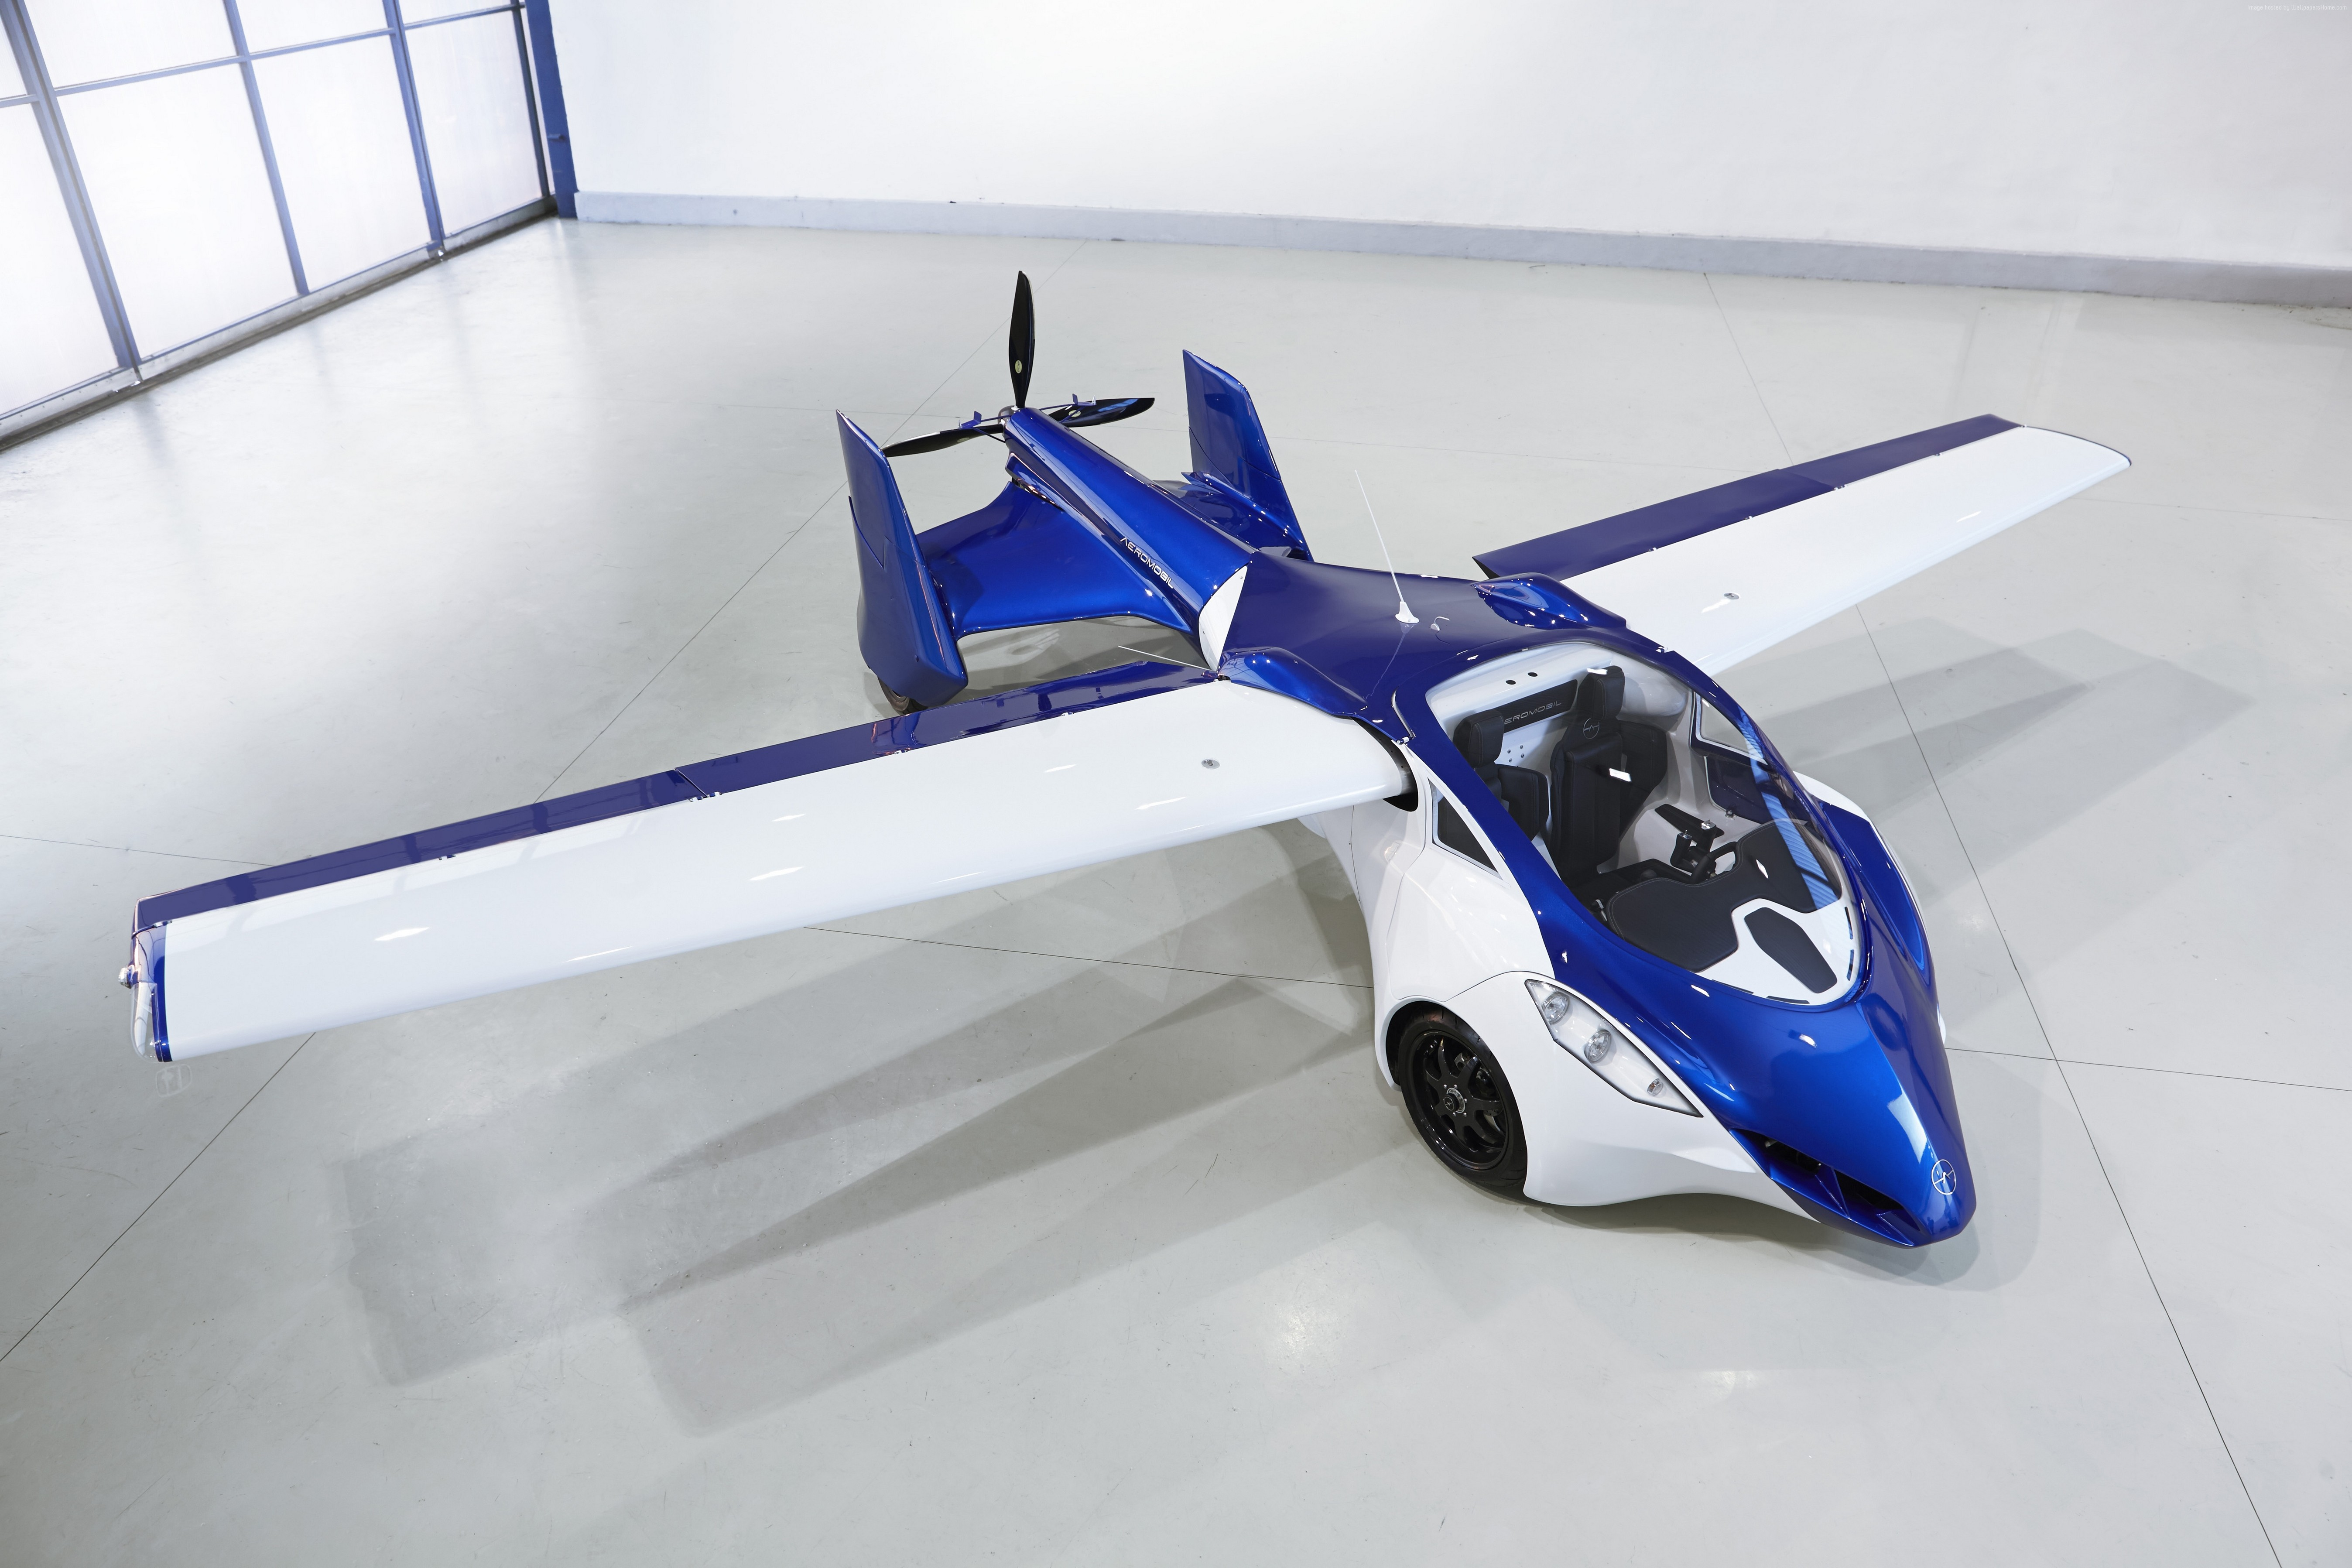 runway front car flying car AeroMobil 30 concept test 5391x3594